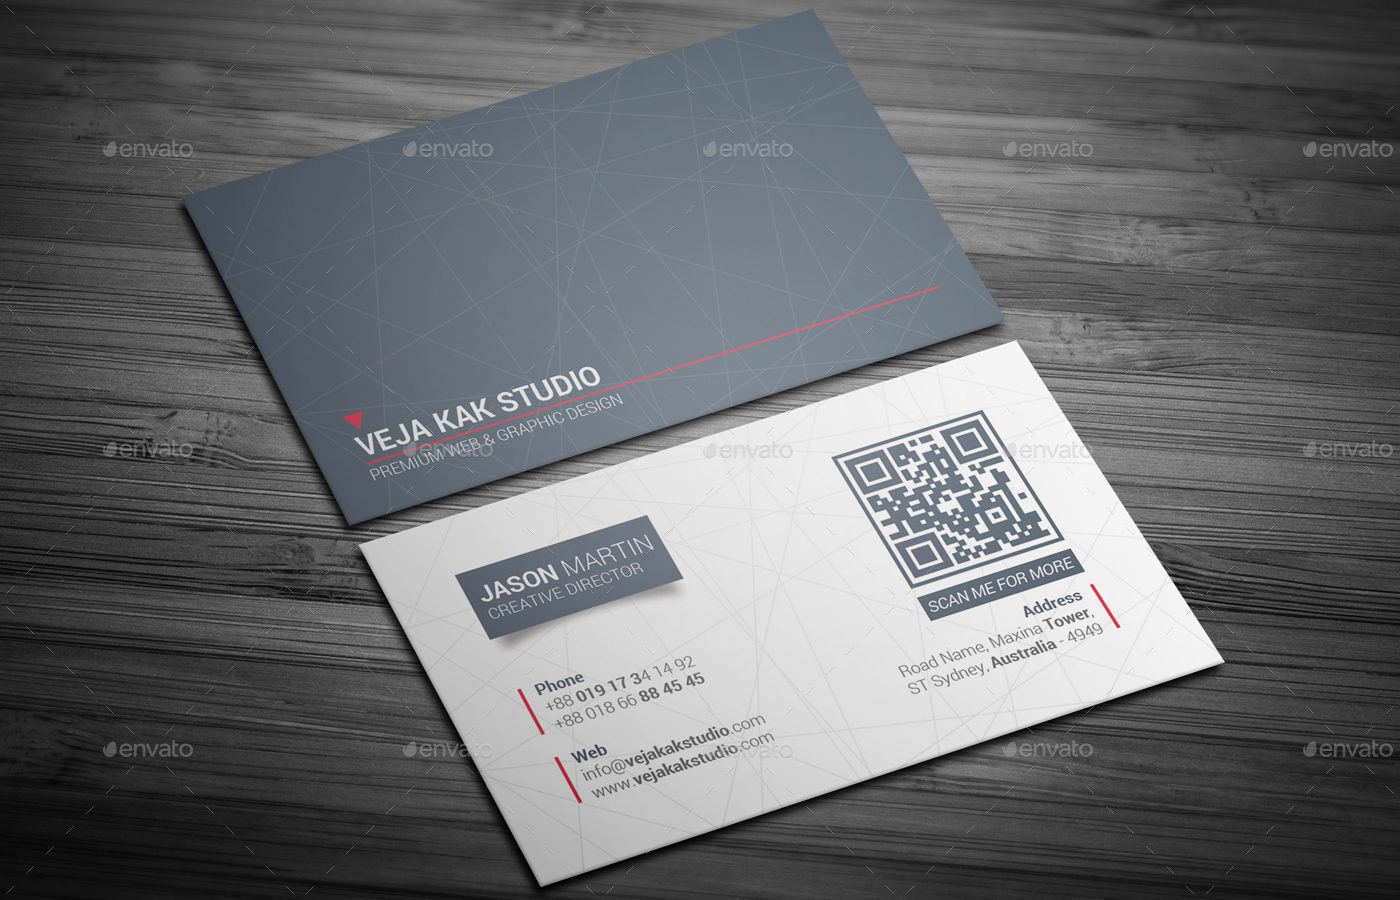 Sleek minimal business card by vejakakstudio graphicriver sleek minimal business card cheaphphosting Choice Image